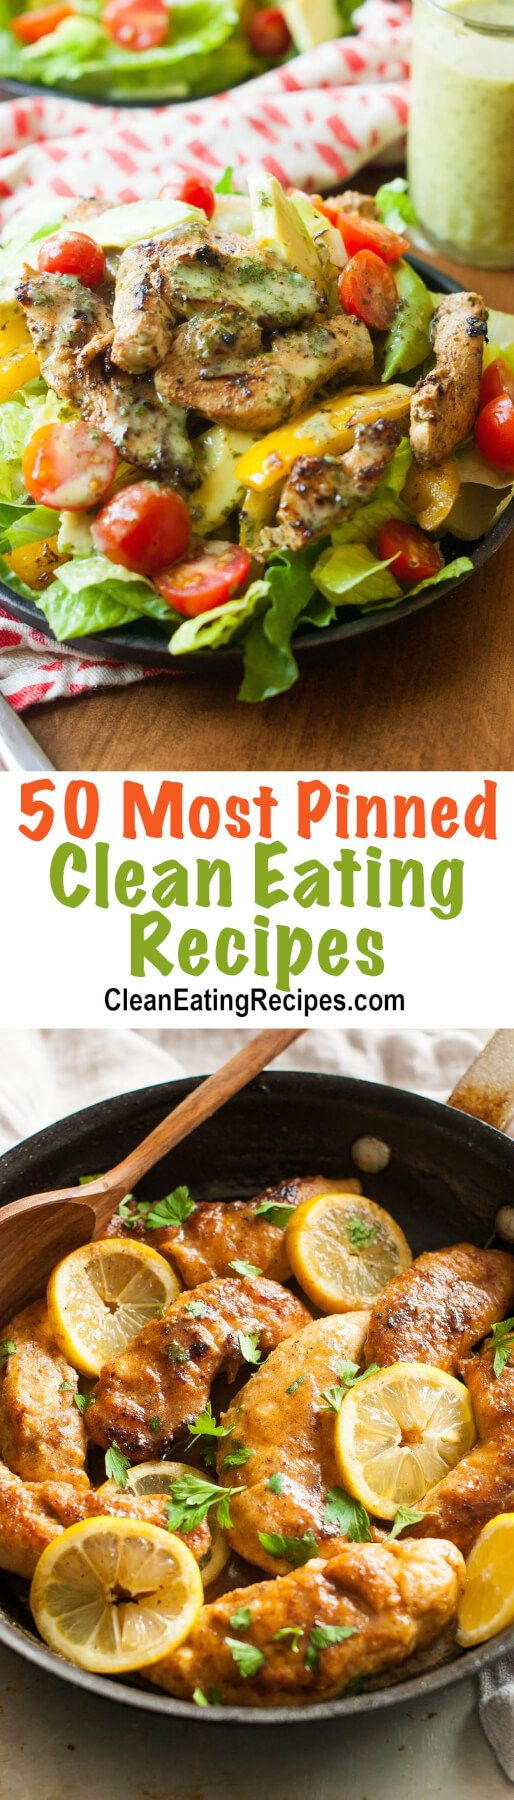 The 48 Best Clean Eating Recipes Pinned Over 50,000 Times on Pinterest